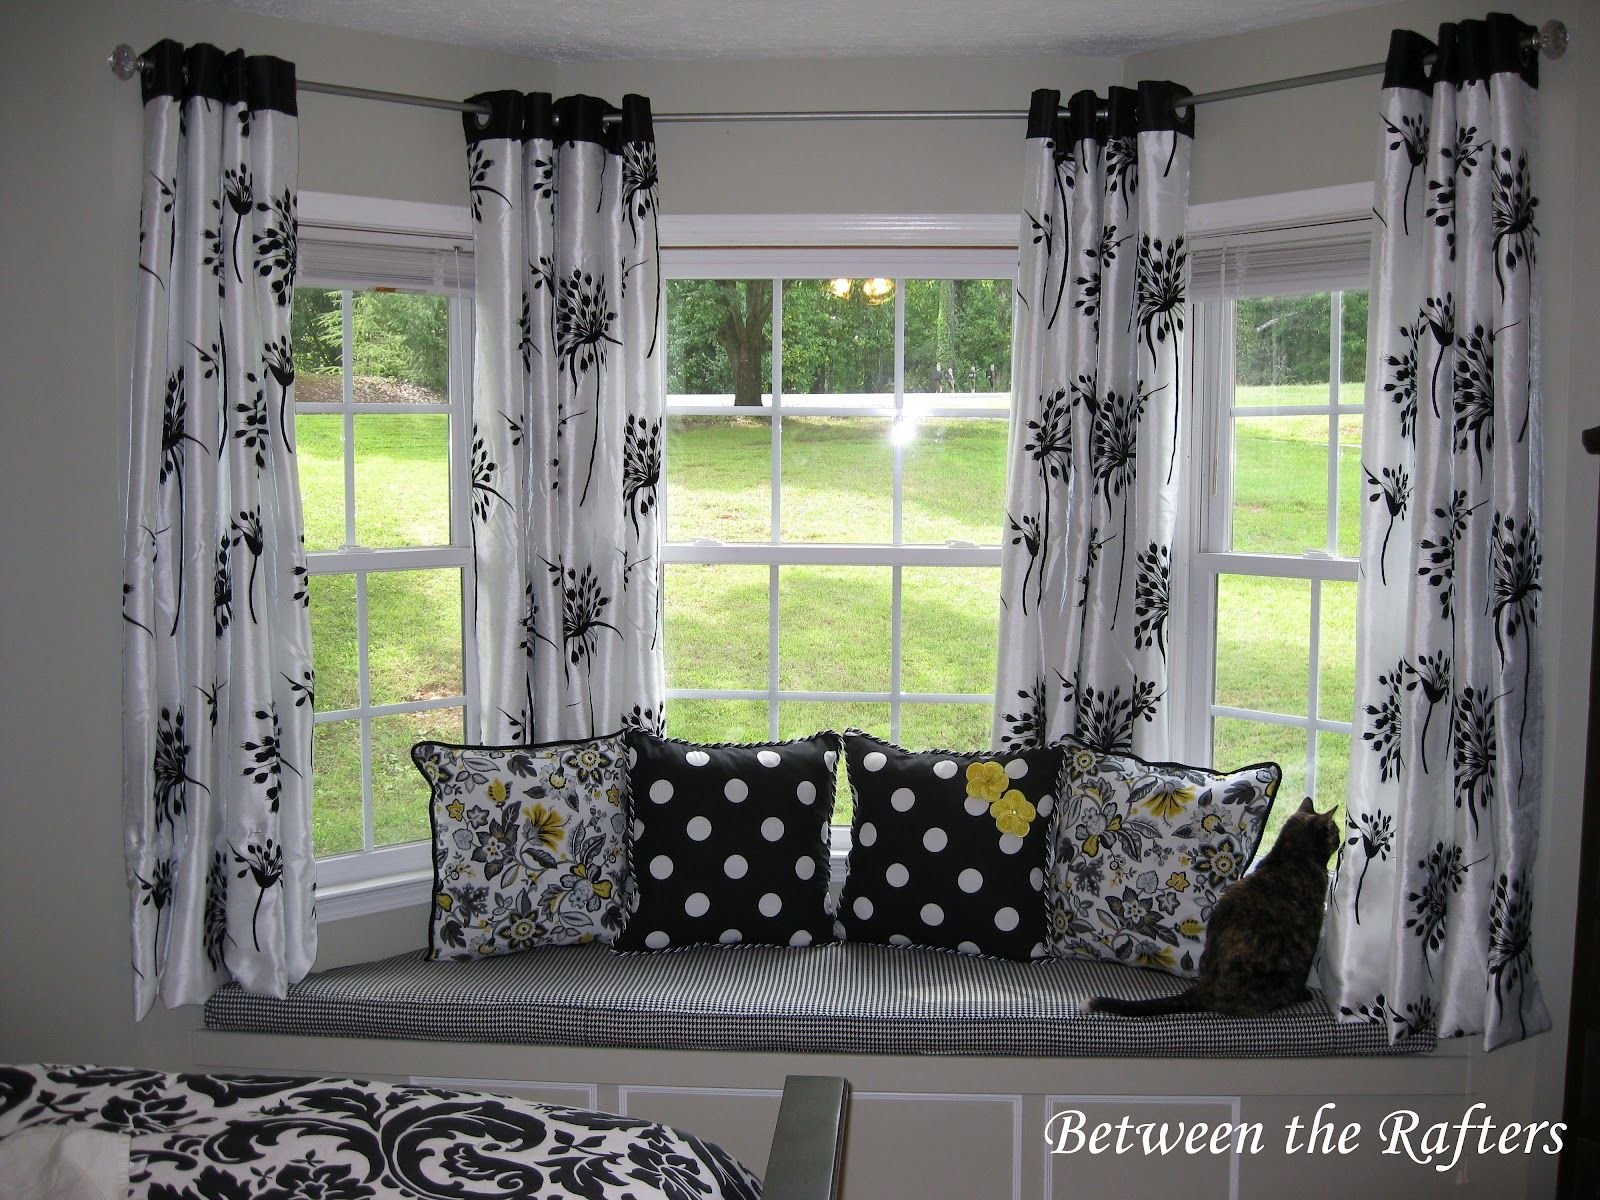 Living room curtain ideas for bay windows - Between The Rafters Do It Yourself Bay Window Curtain Rod Tutorial